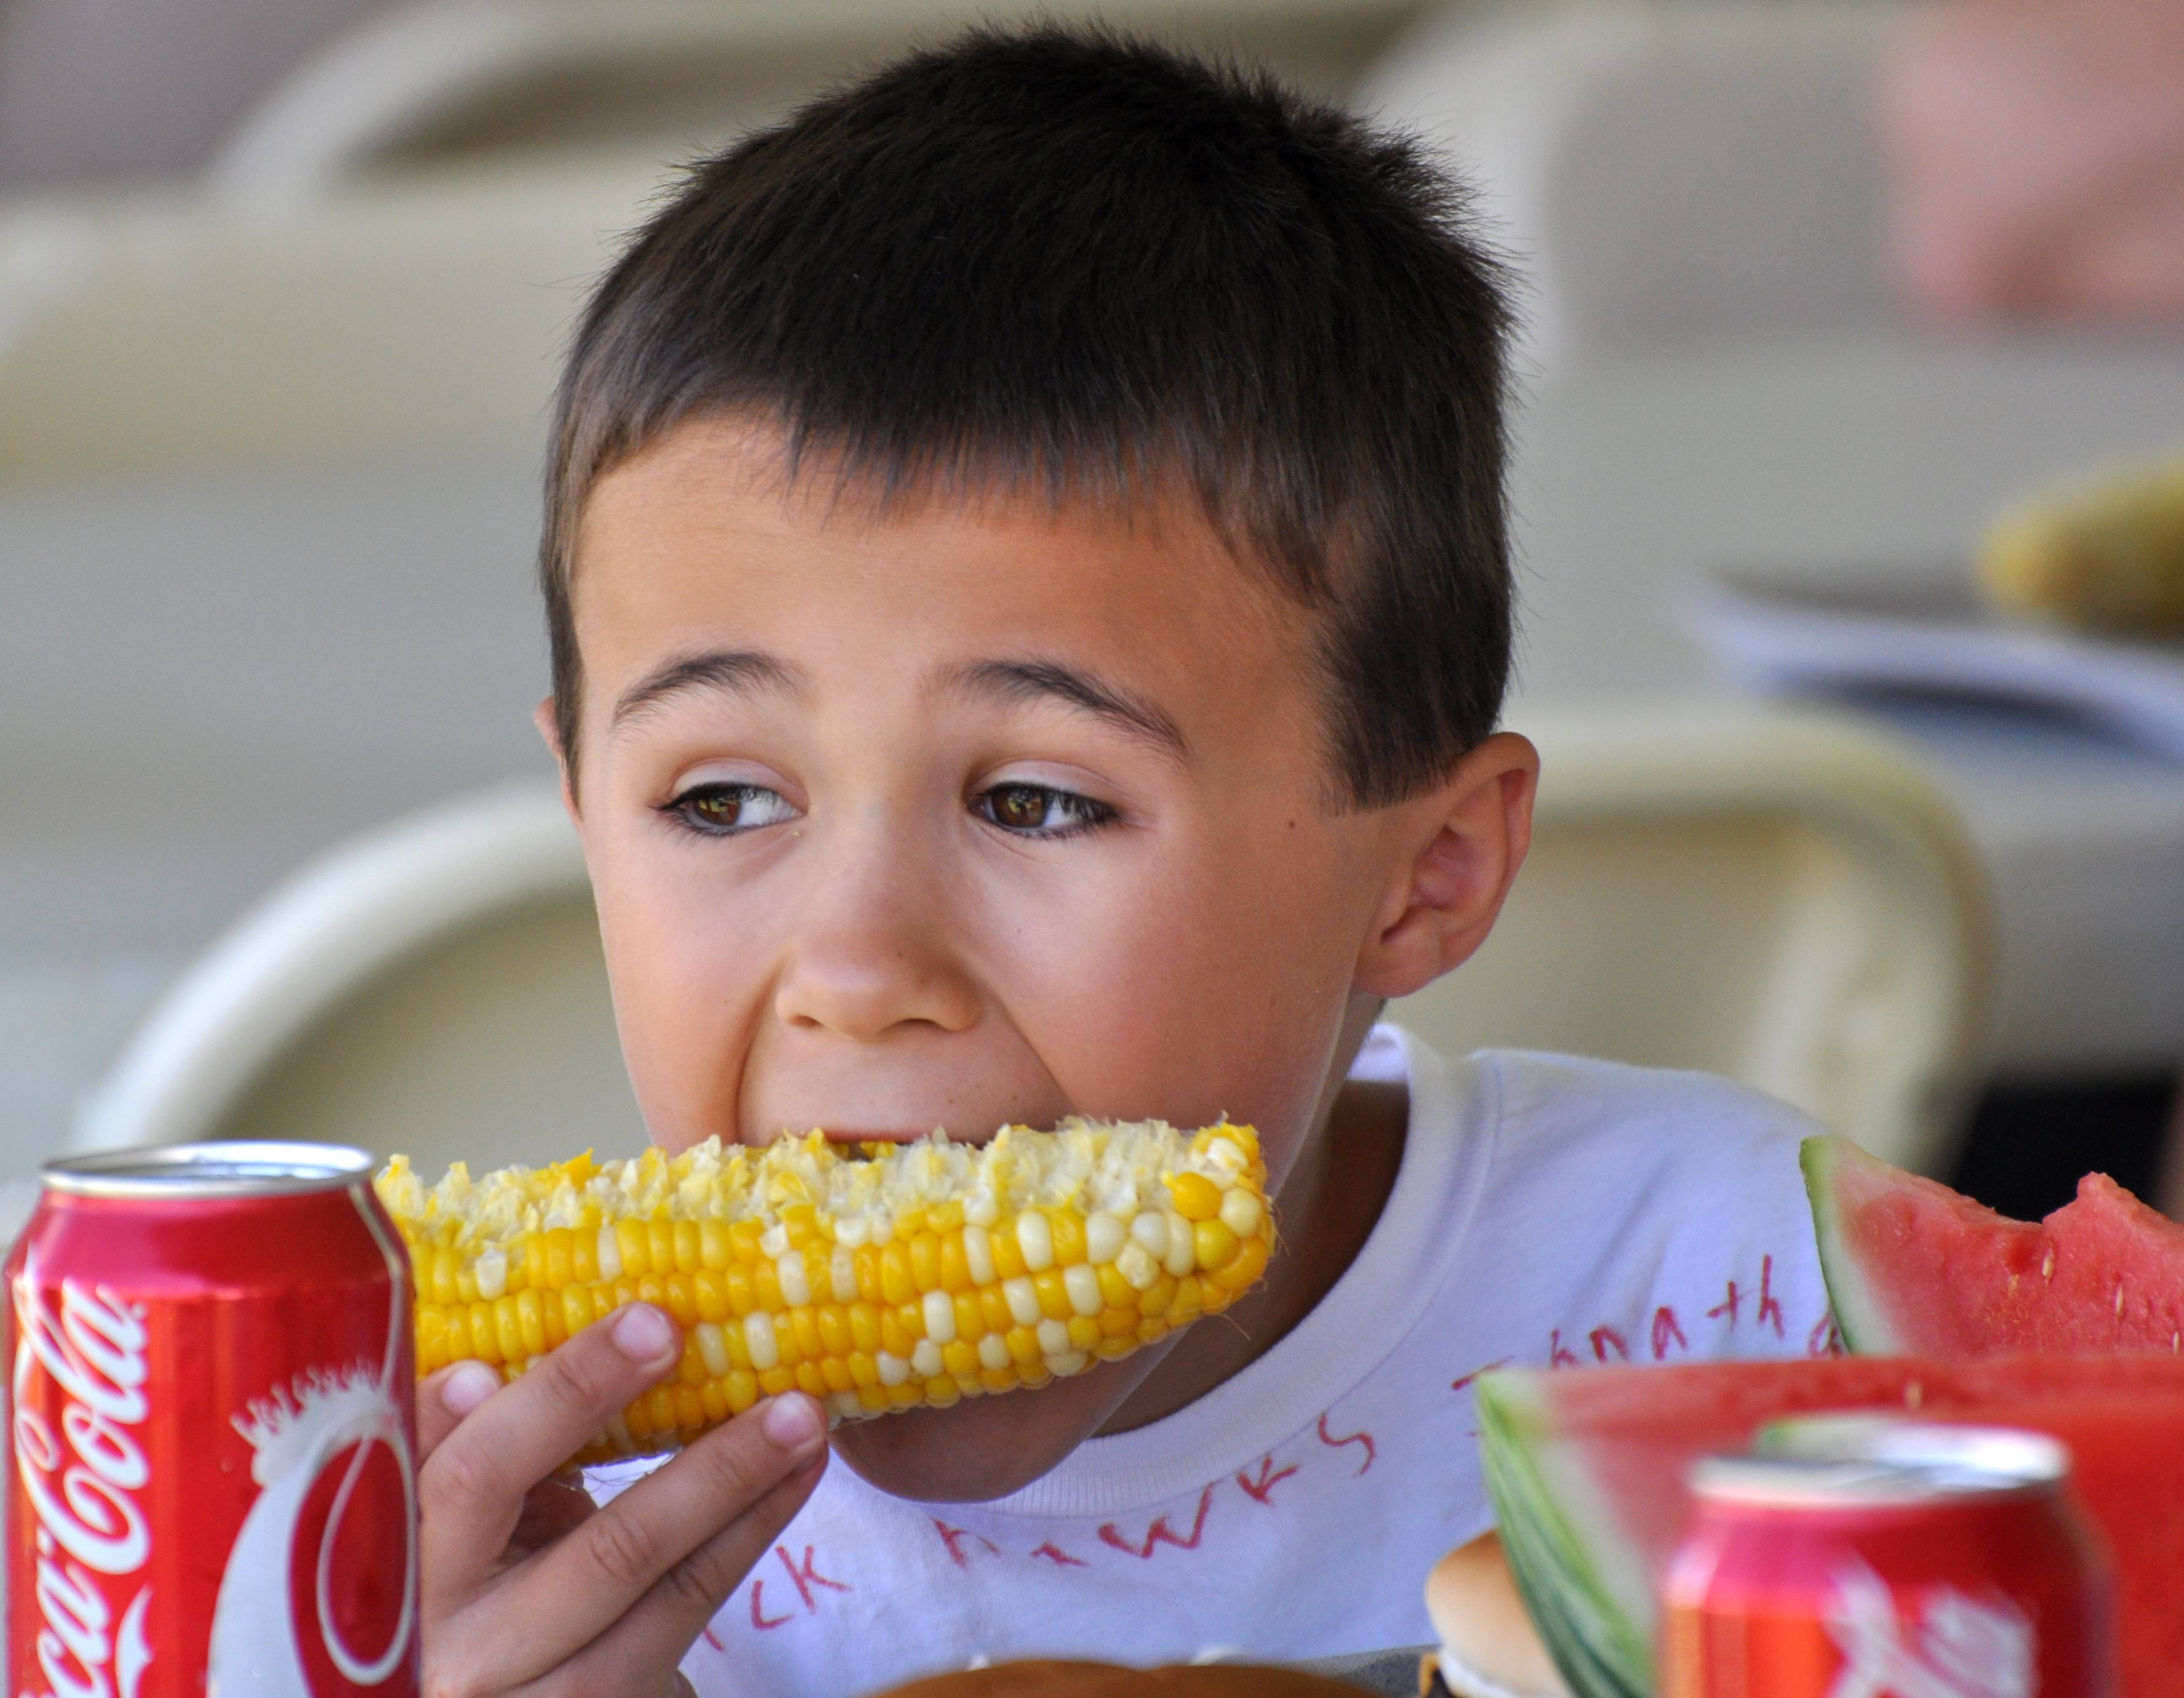 Dave Dvorak/ddvorak@dailyherald.com August 2013Drew Bhillibs of Arlington Heights eats an ear of corn during the 57th annual Corn Fest in Rolling Meadows.